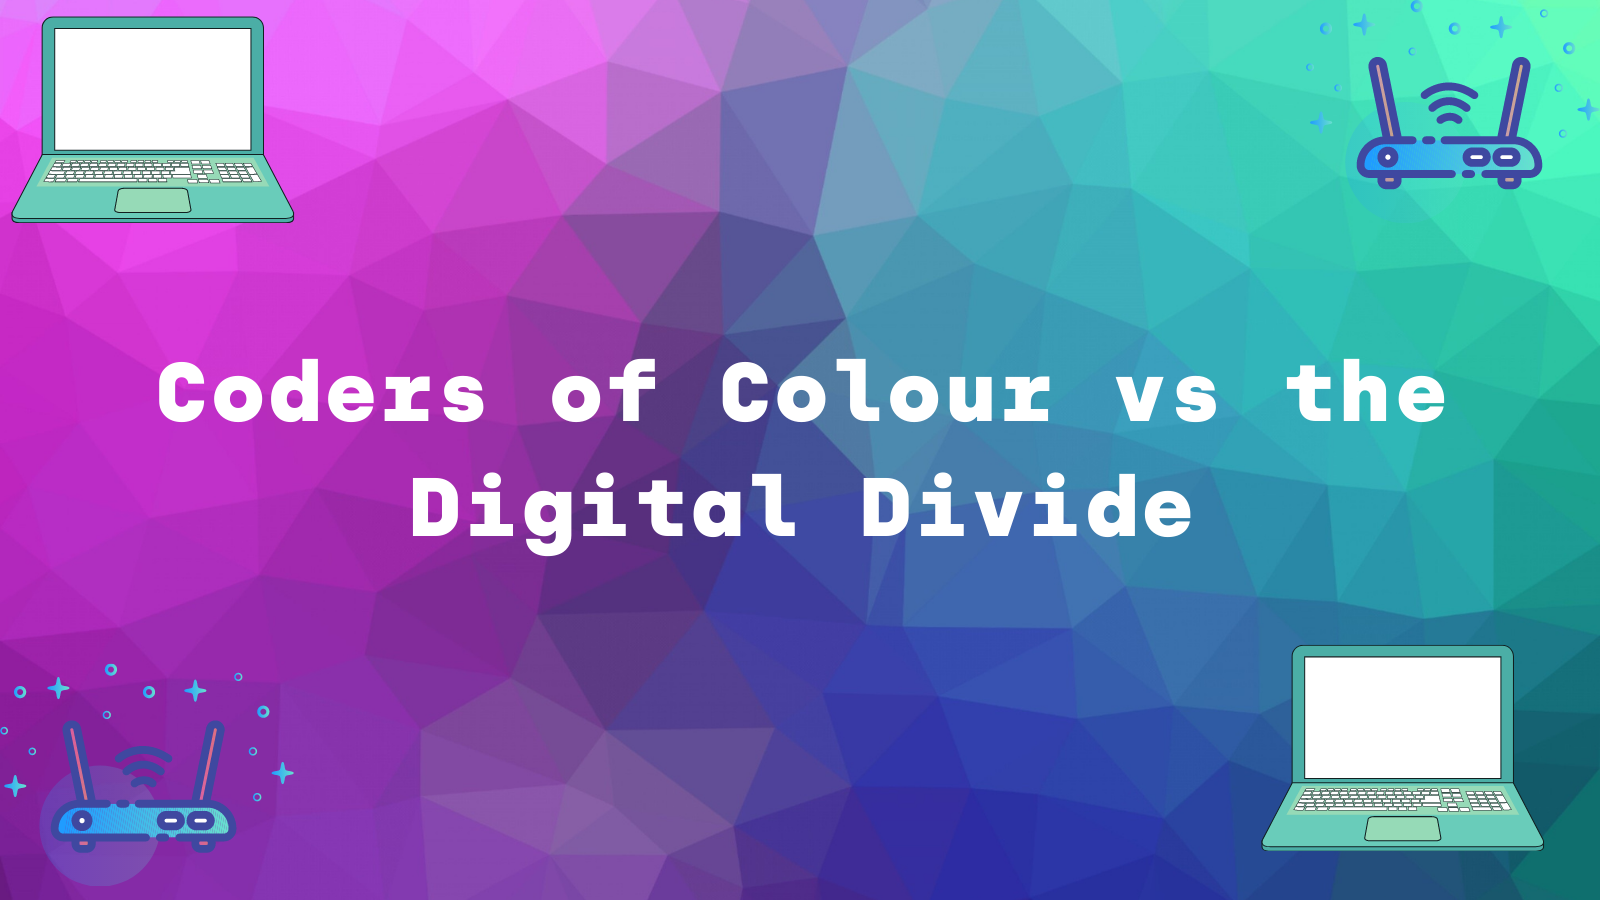 Coders of Colour vs the Digital Divide